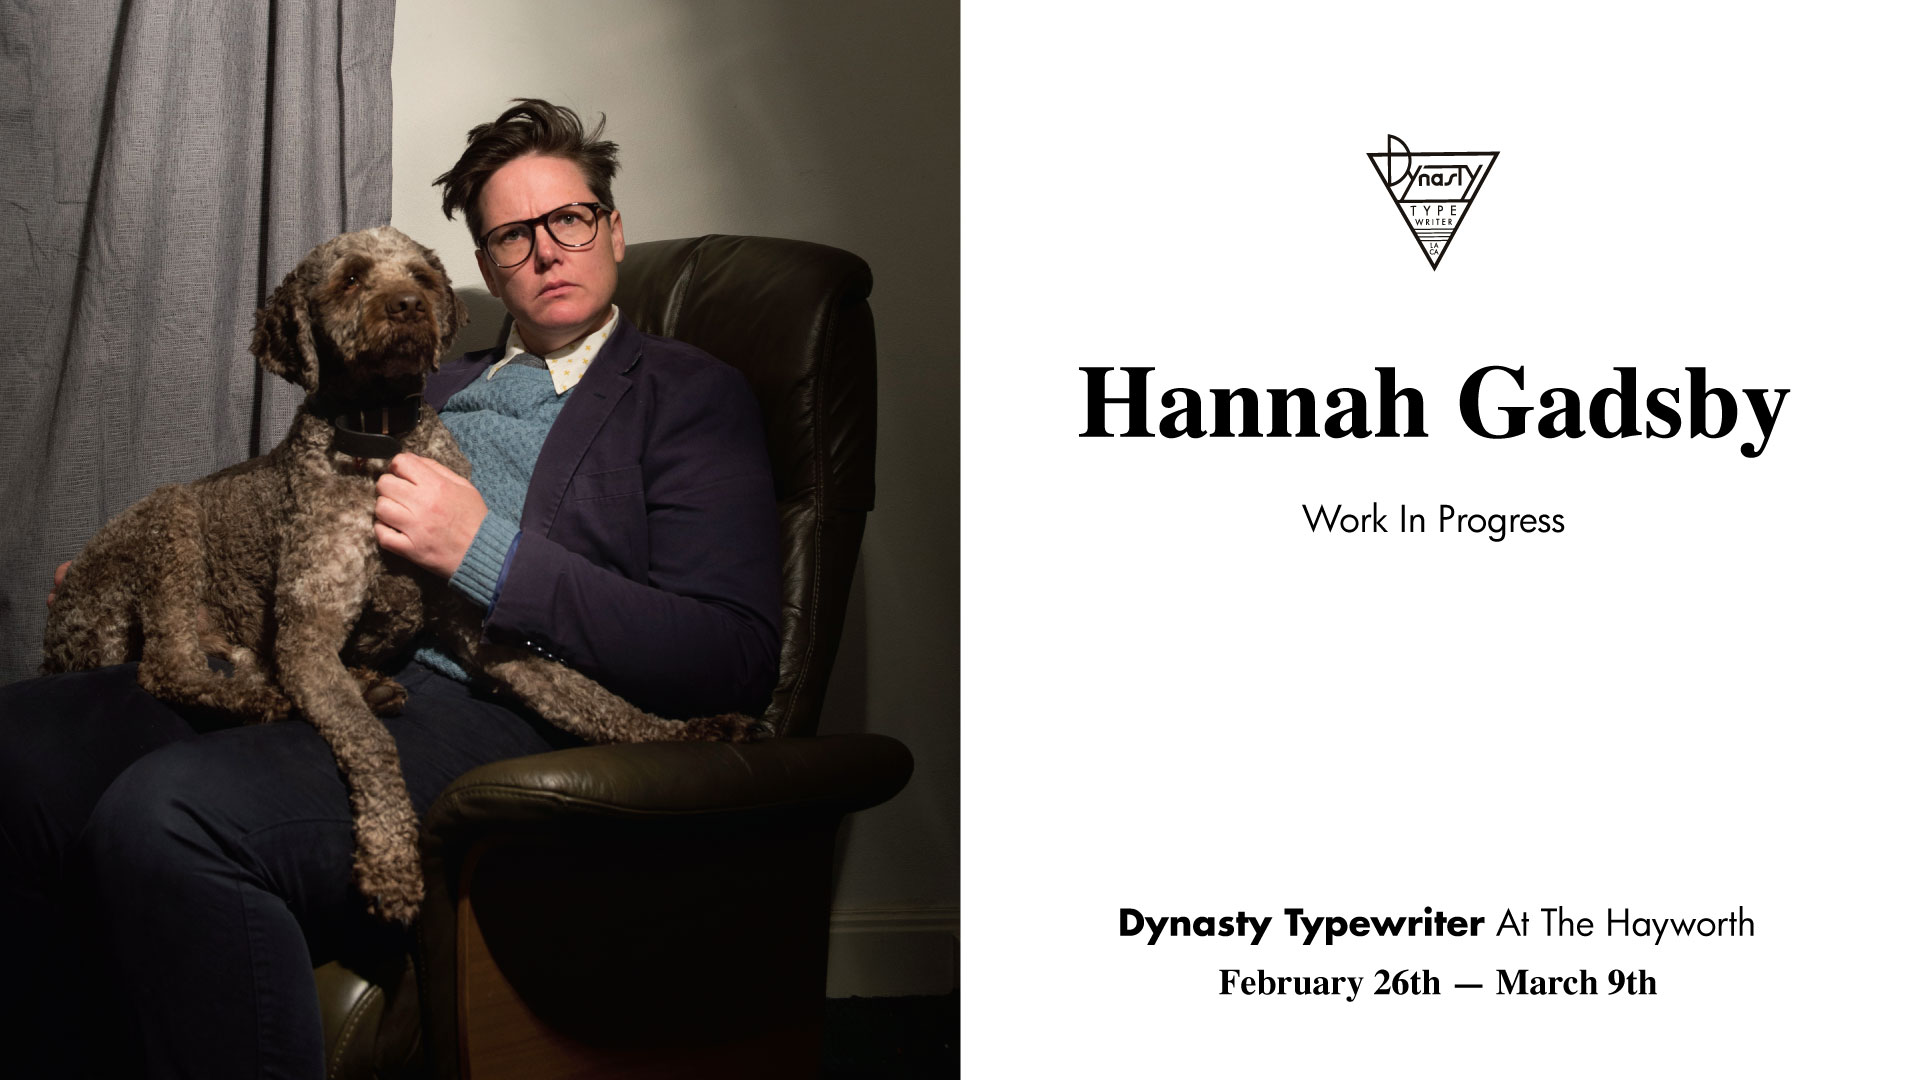 Hannah Gadsby at Dynasty Typewriter